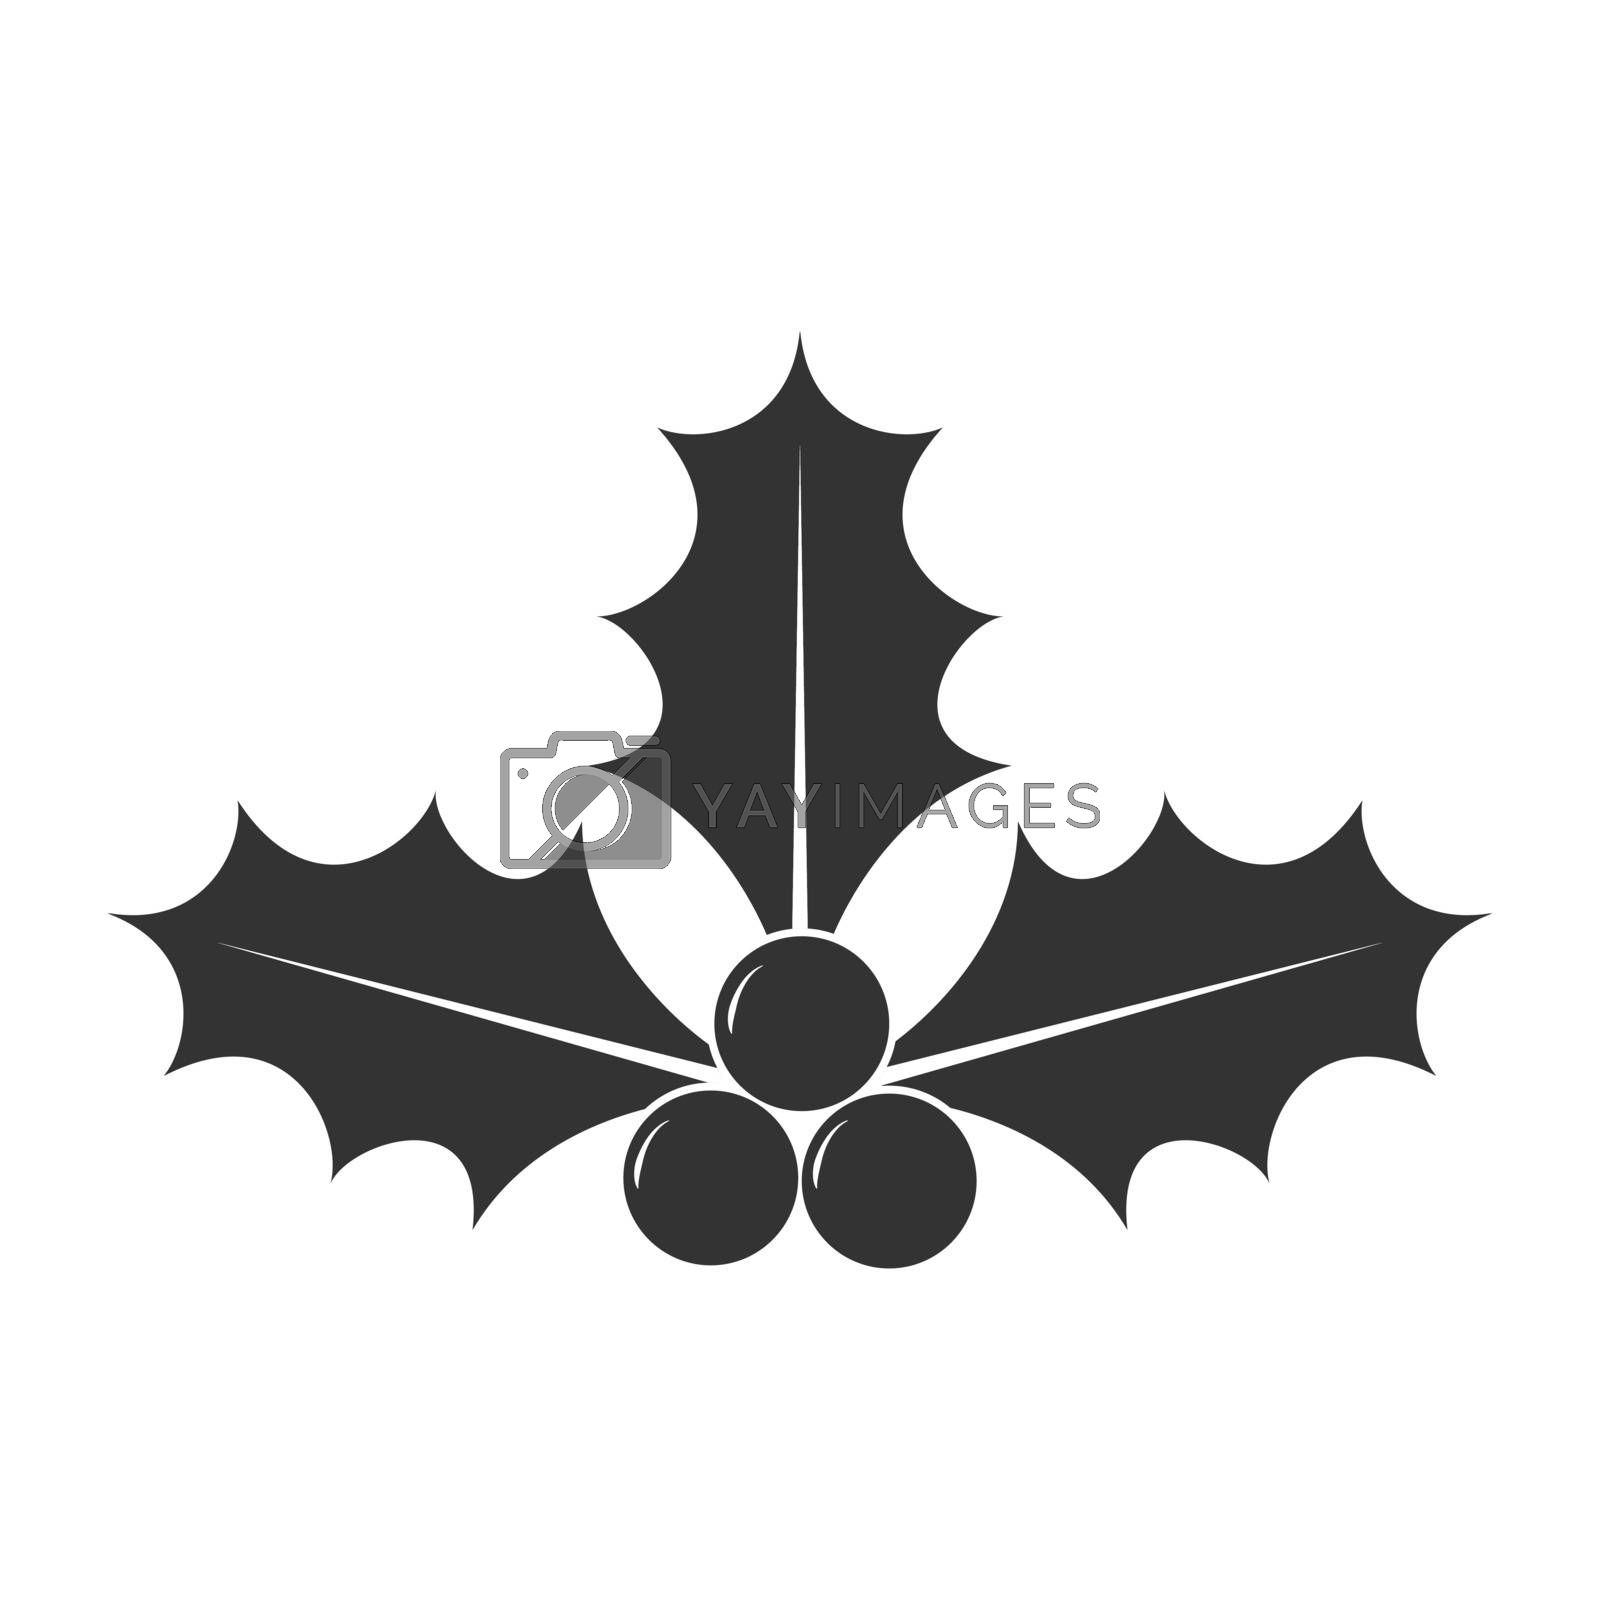 Icon of New Year's decoration for design and decoration, flat style